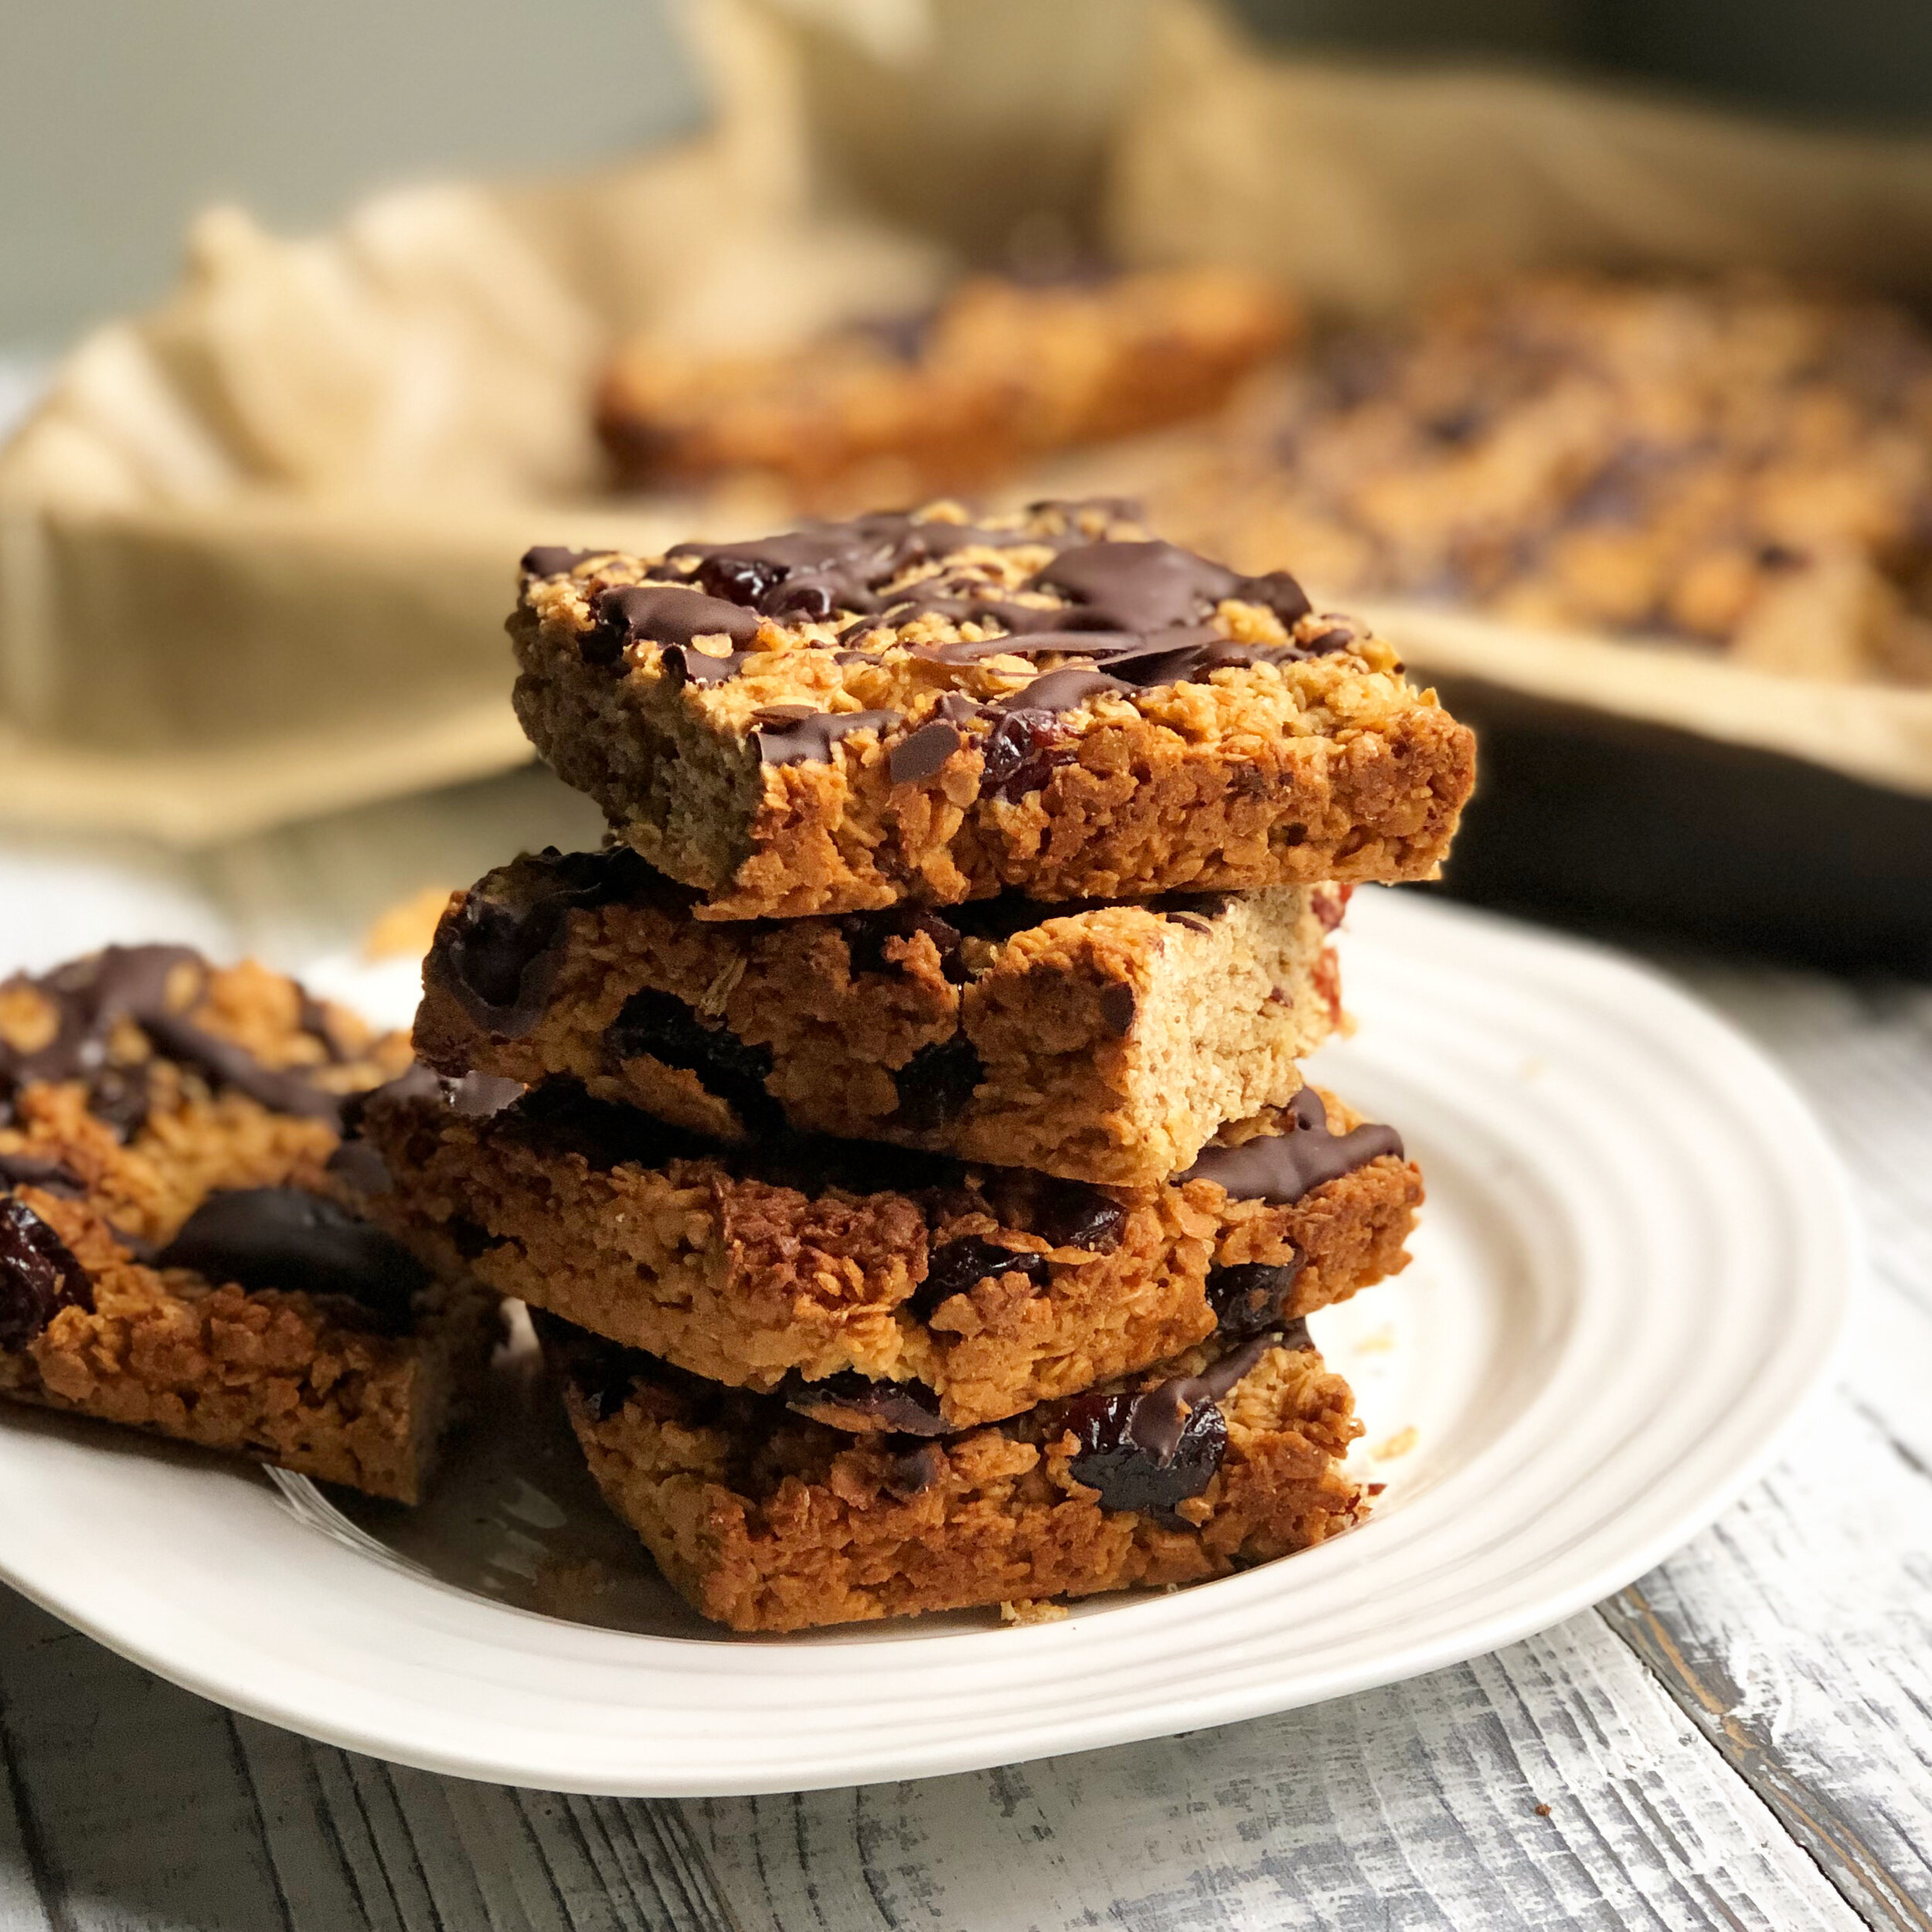 Vegan Snack Vegan Snack Recipes Meat Free Fitness,Streusel Topping For Muffins